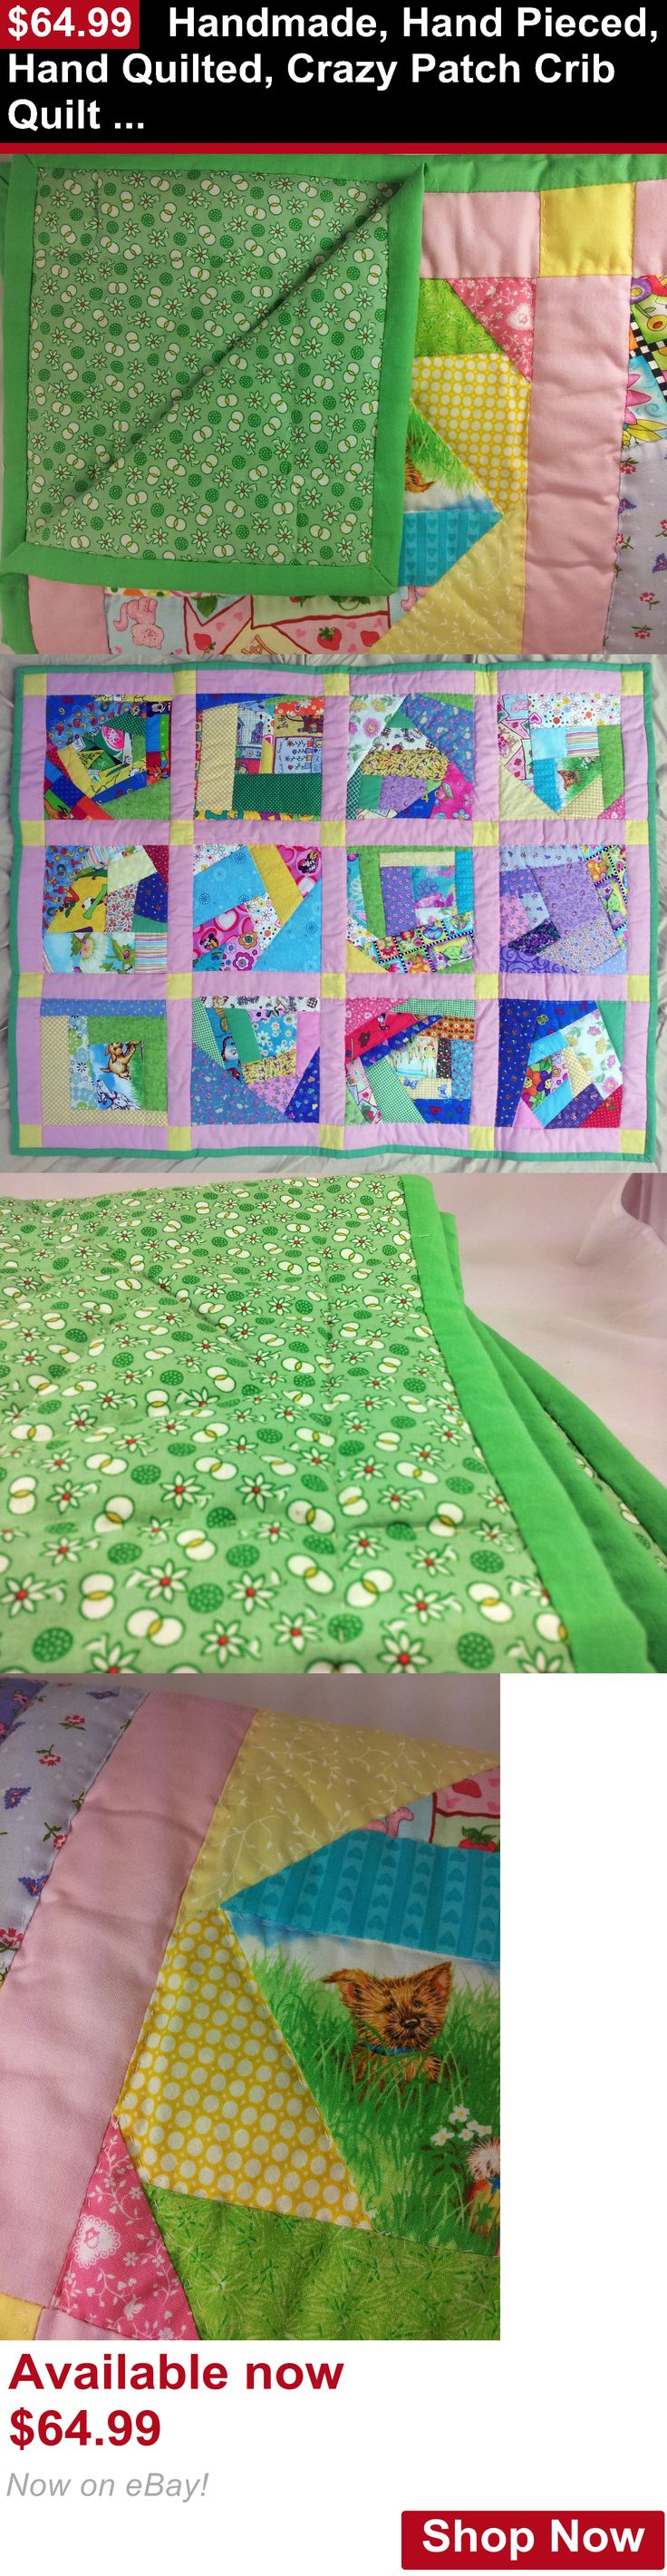 Quilts And Coverlets: Handmade, Hand Pieced, Hand Quilted, Crazy Patch Crib Quilt / Comforter On Sale BUY IT NOW ONLY: $64.99